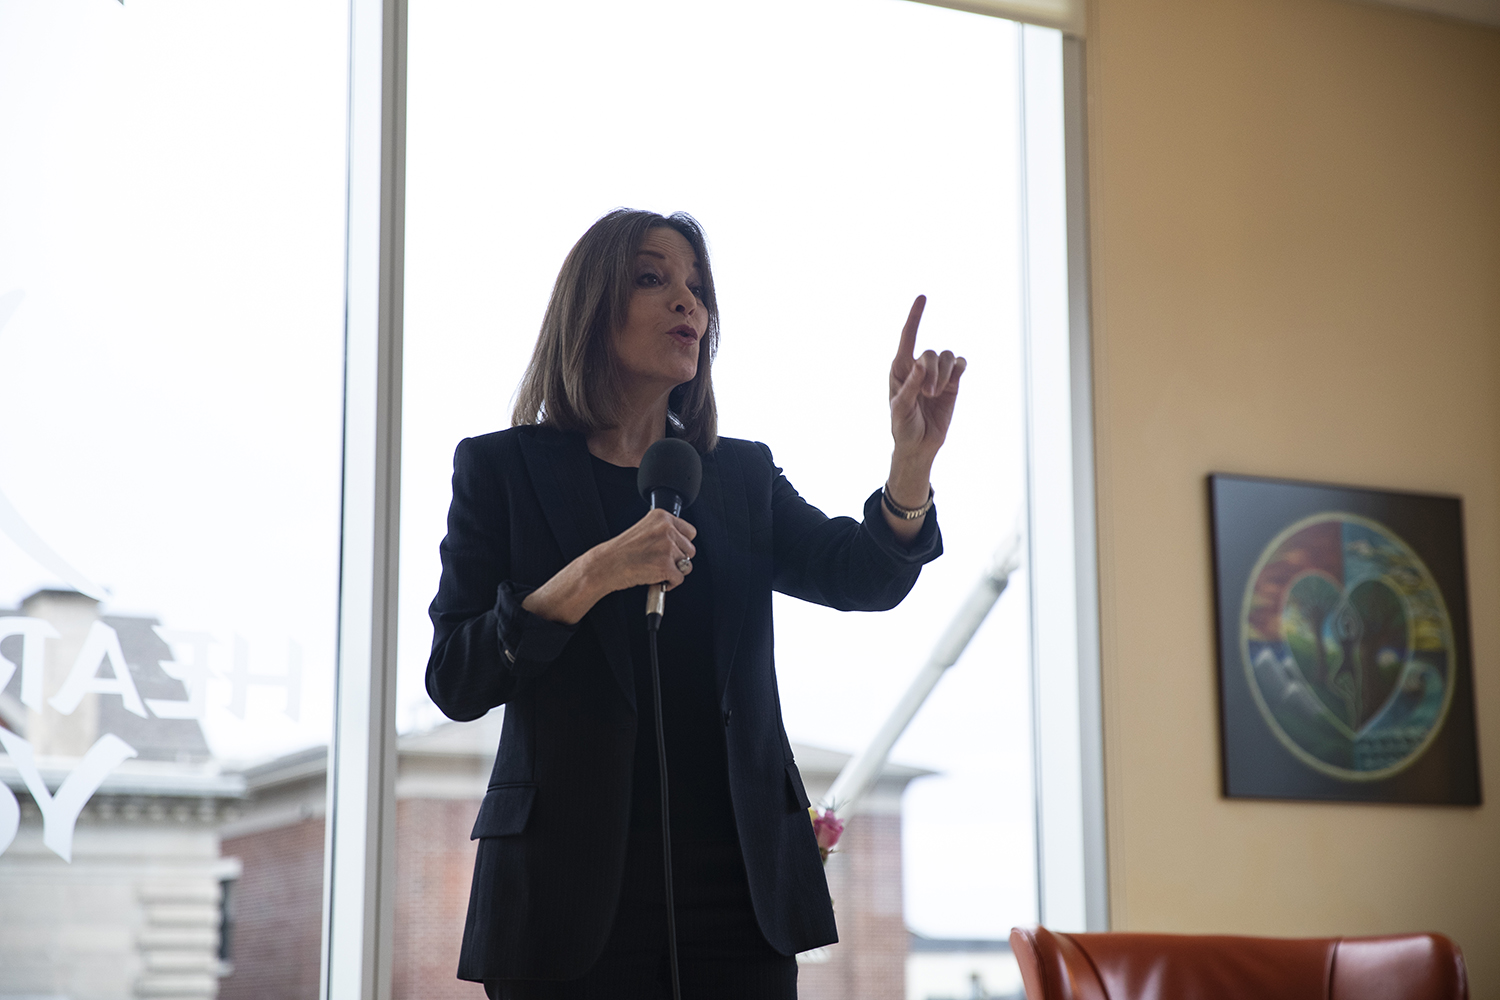 2020 Democratic candidate Marianne Williamson speaks at Heartland Yoga on Sunday, Dec. 1, 2019. The author compared the government to the human body, promoting ongoing healing.